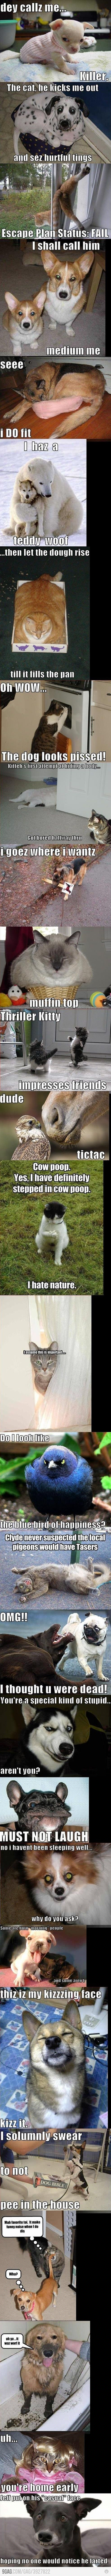 Cute Animals saying funny things! I love them All just cant pick a favorite!